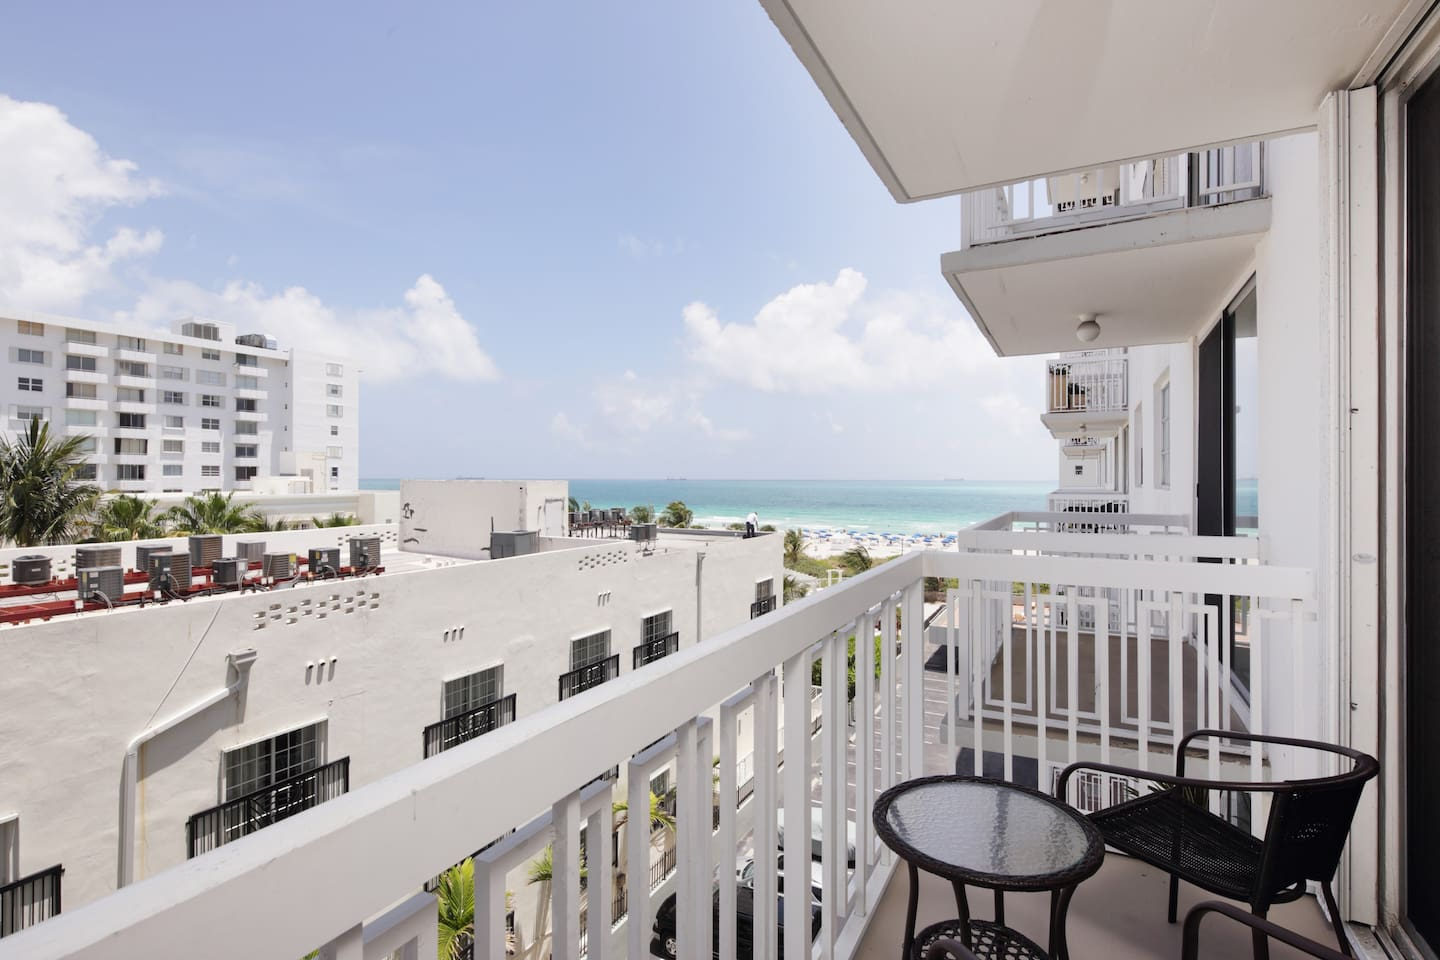 Beach Access Just A Few Steps From Your Door, Ocean Views From Your Private Balcony!